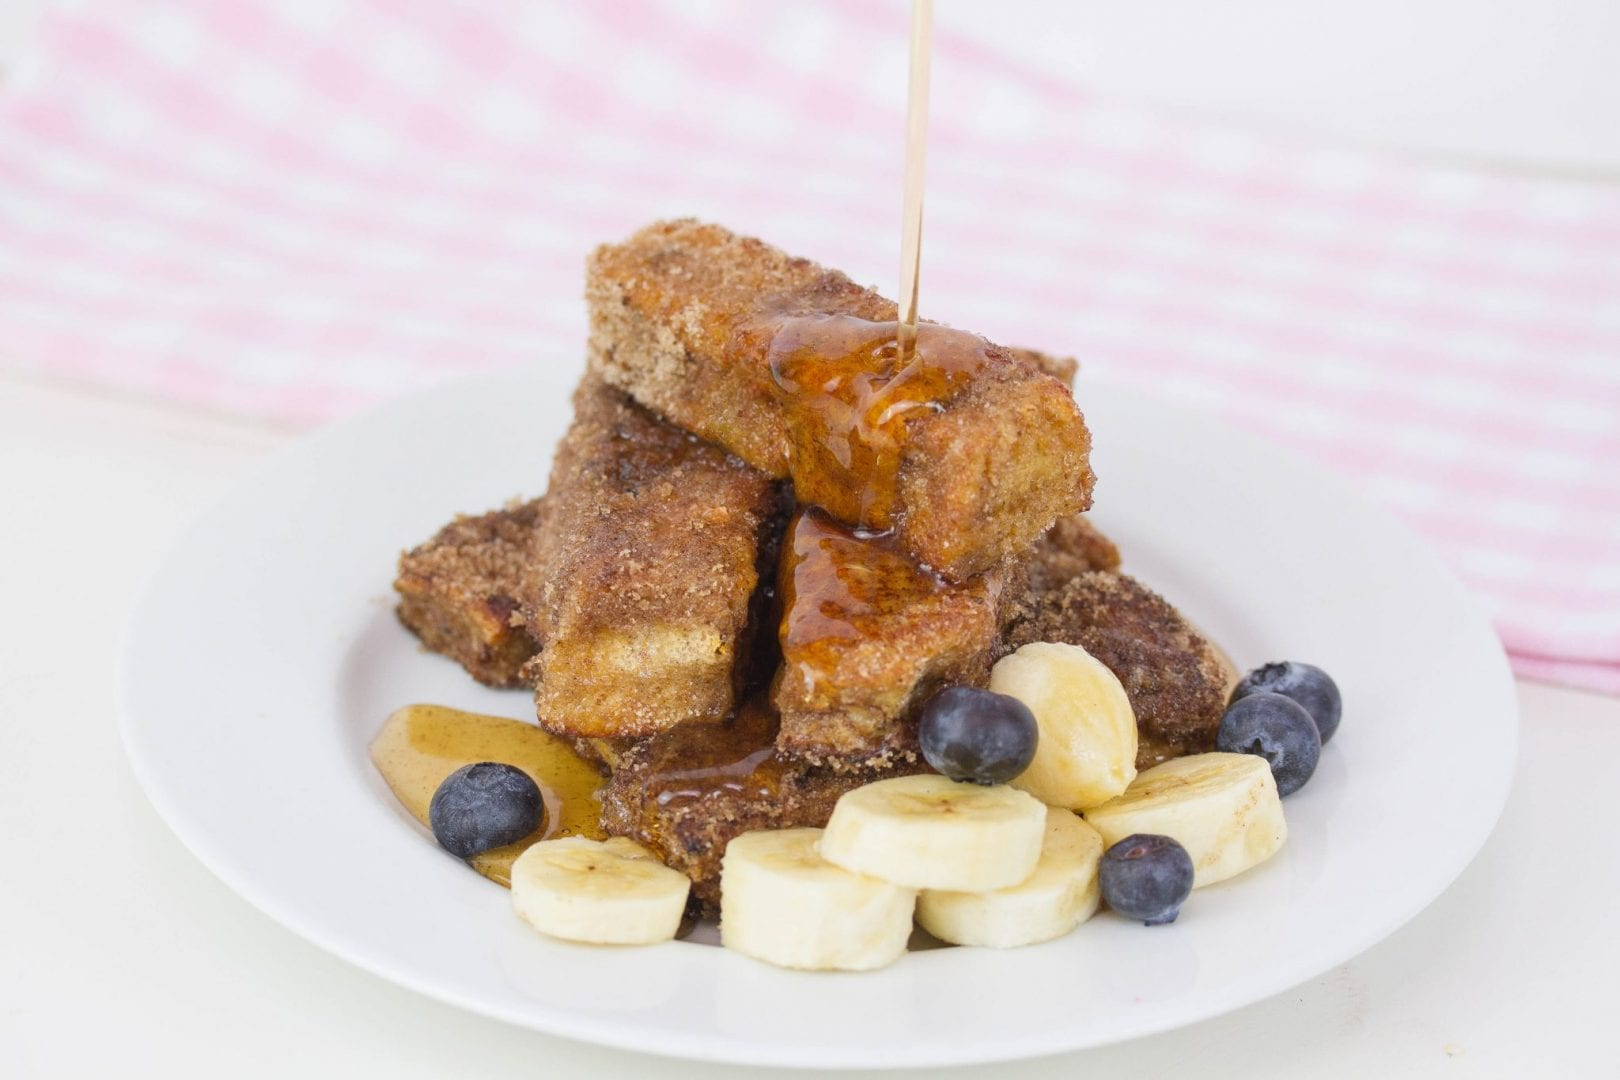 Cinnamon french toast sticks - enjoy these delicious and wholesome french toast sticks as a great family breakfast